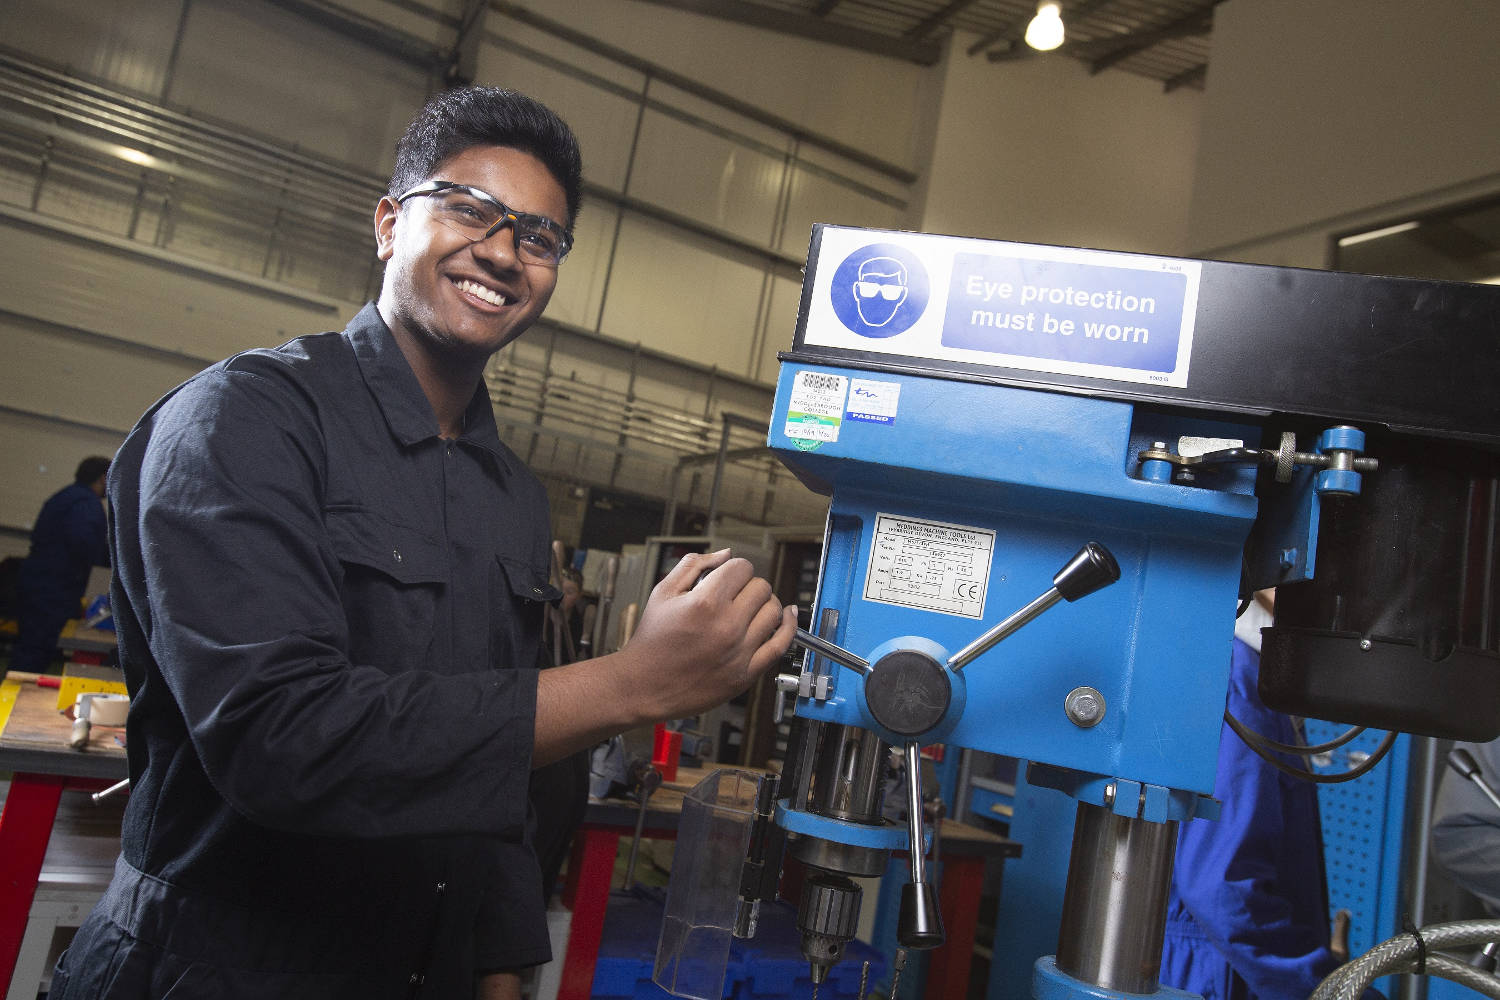 Middlesbrough College to work with WorldSkills UK